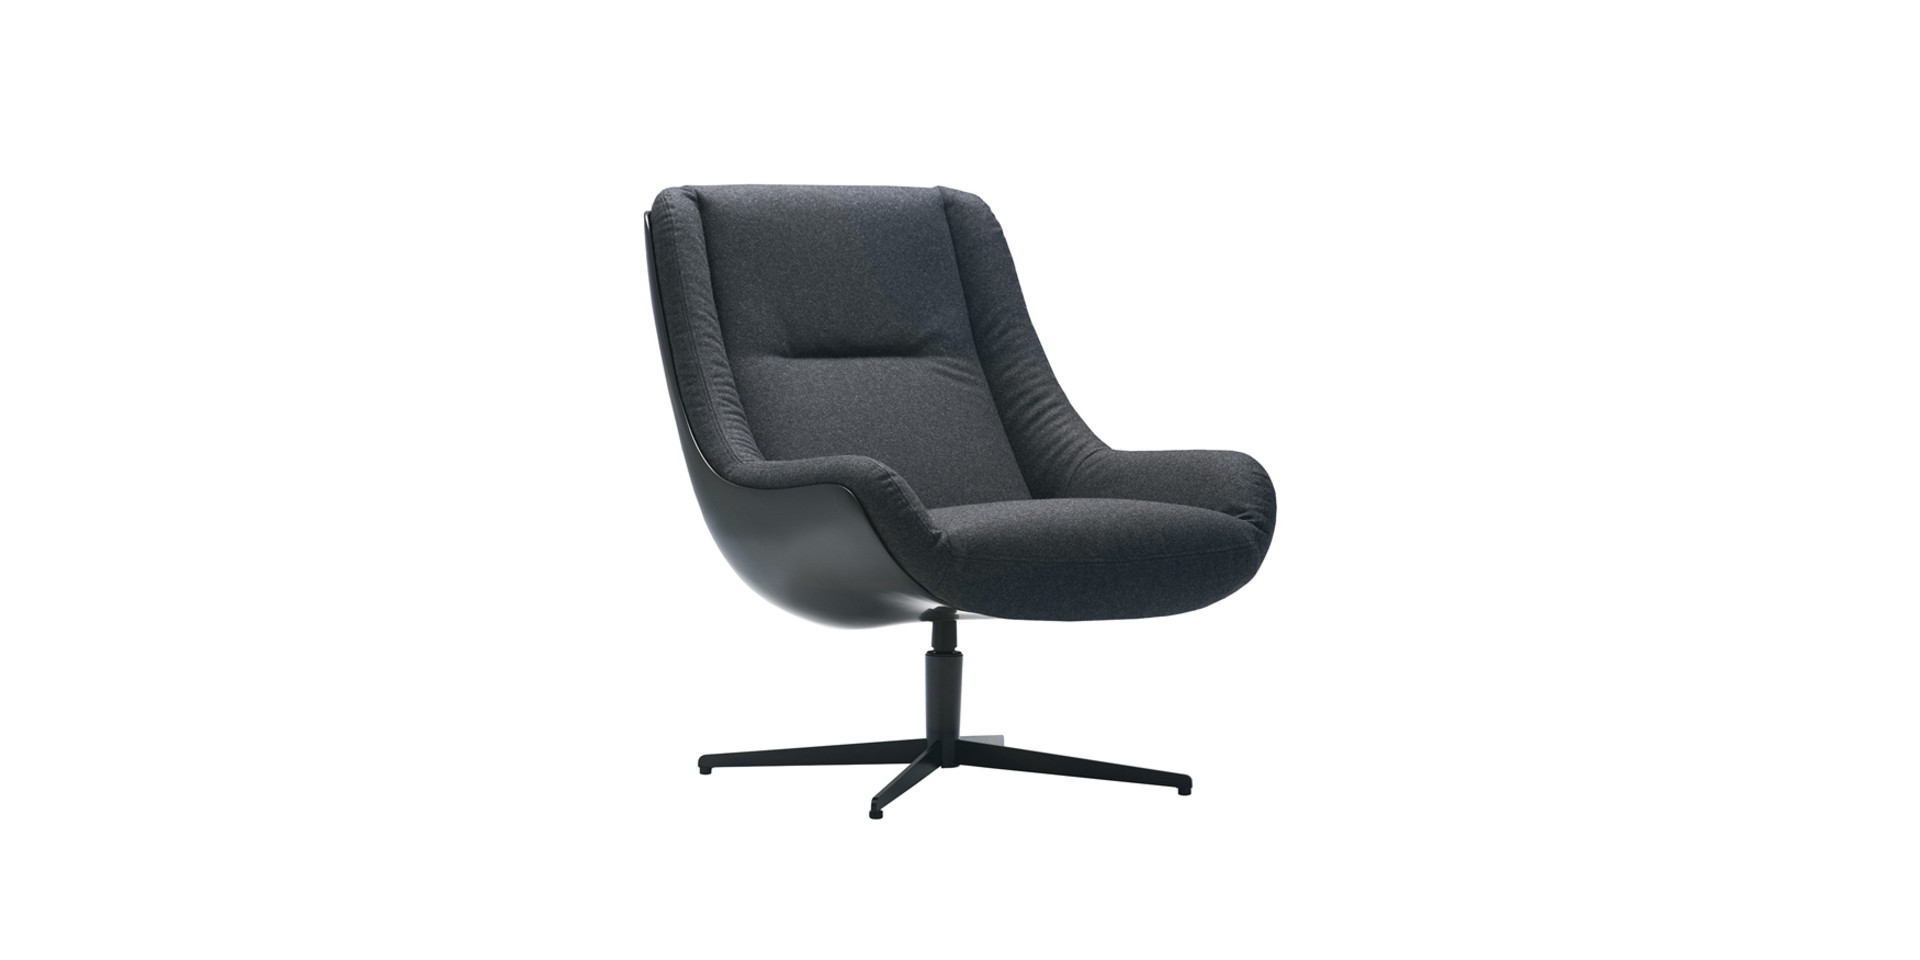 LOVEBIRD_armchair_swivel_black_panno1002_charcoal_2